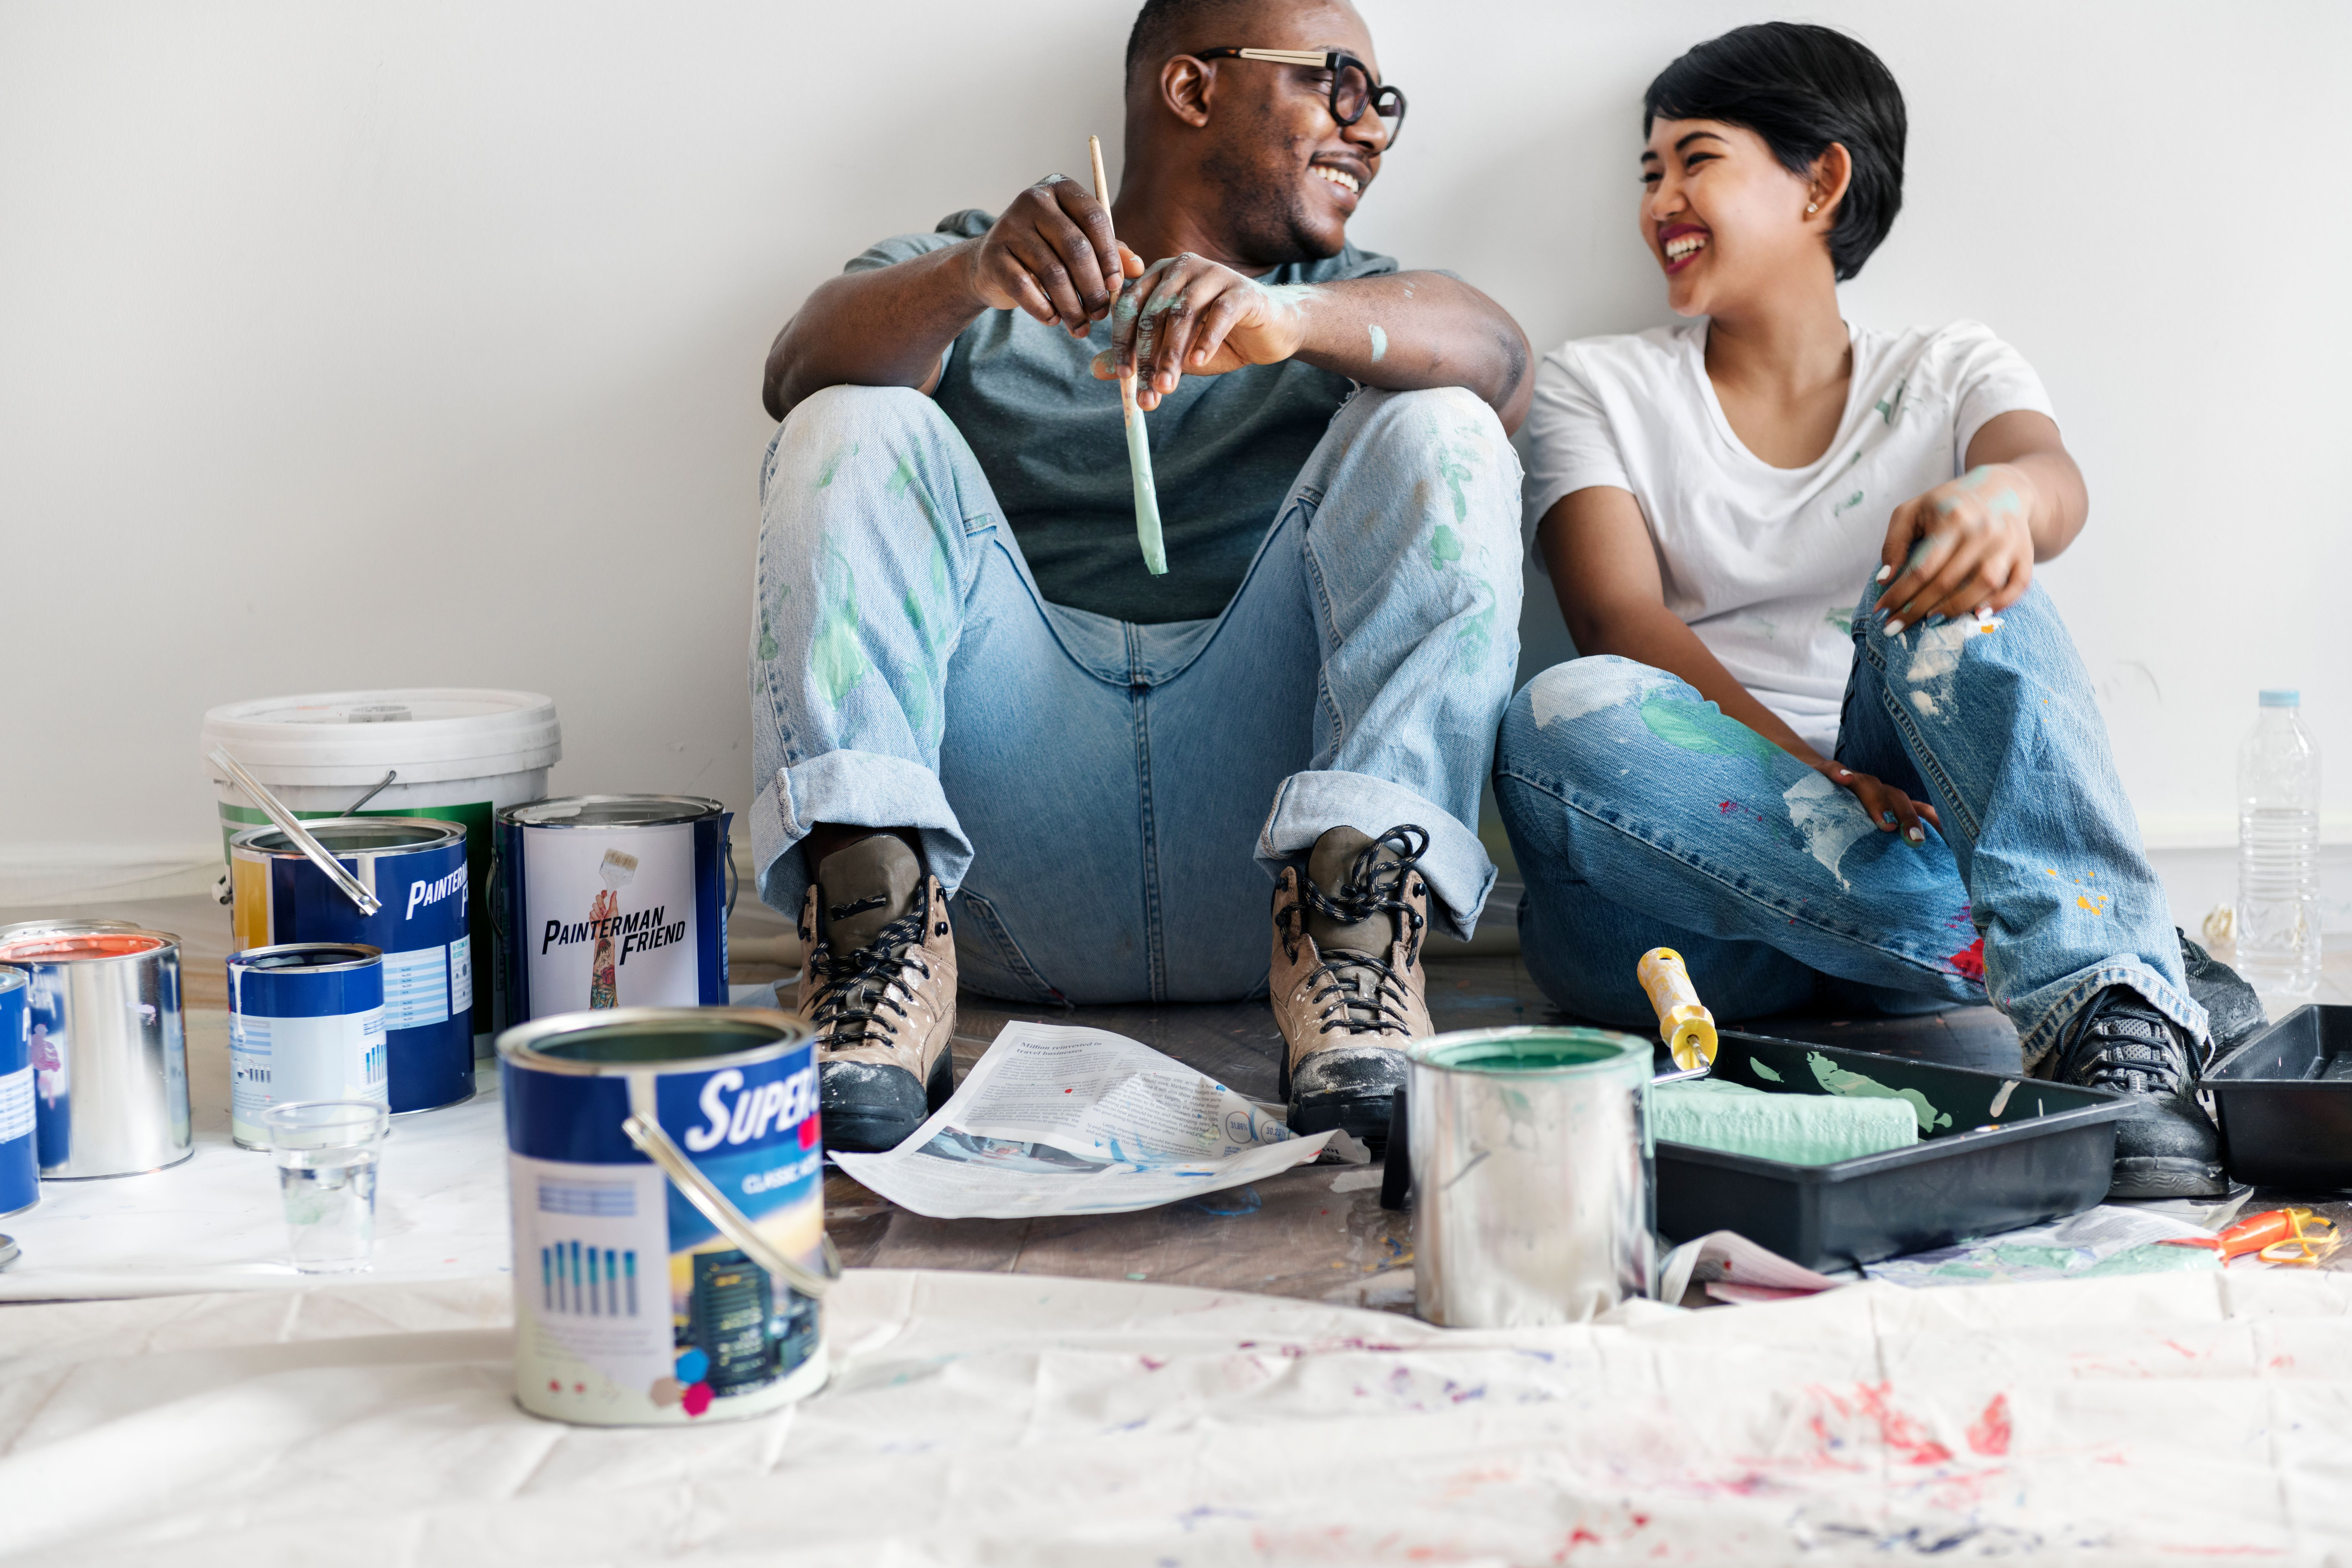 10 Best Home Renovations To Squeeze In Before Winter